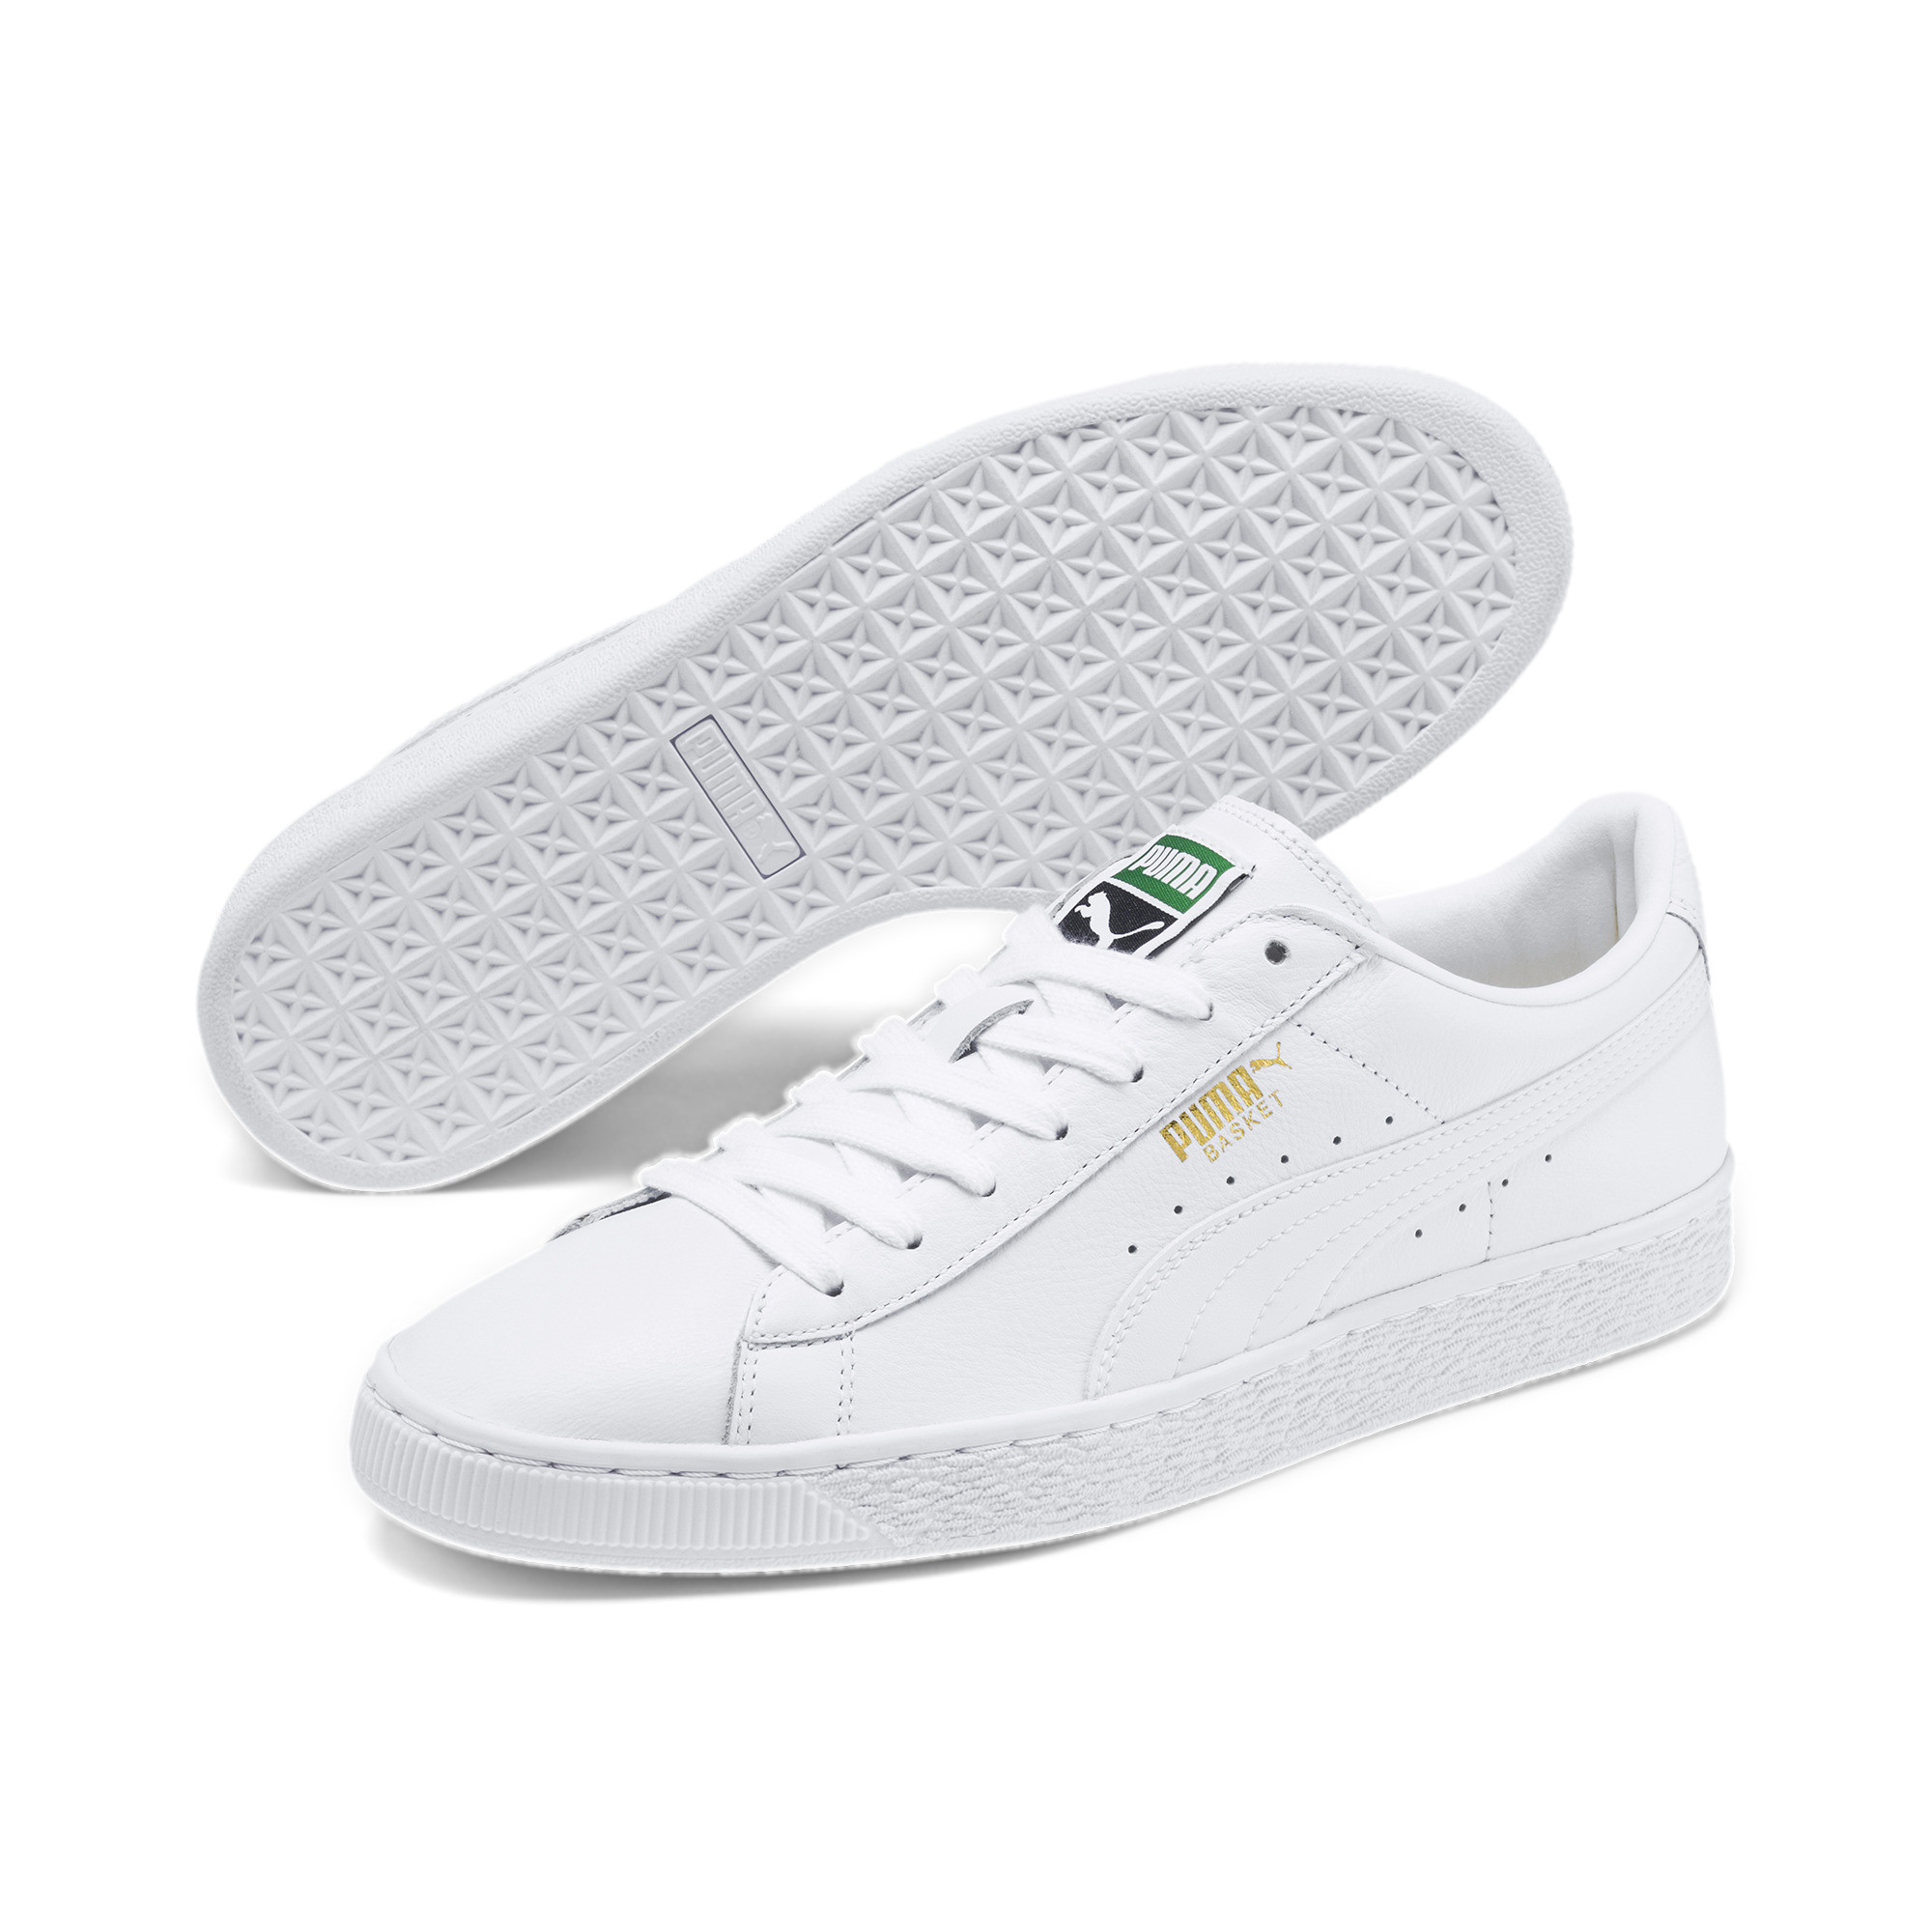 new style 3ee51 e3407 Details about PUMA Heritage Basket Classic Sneakers Men Shoe Sport Shoe